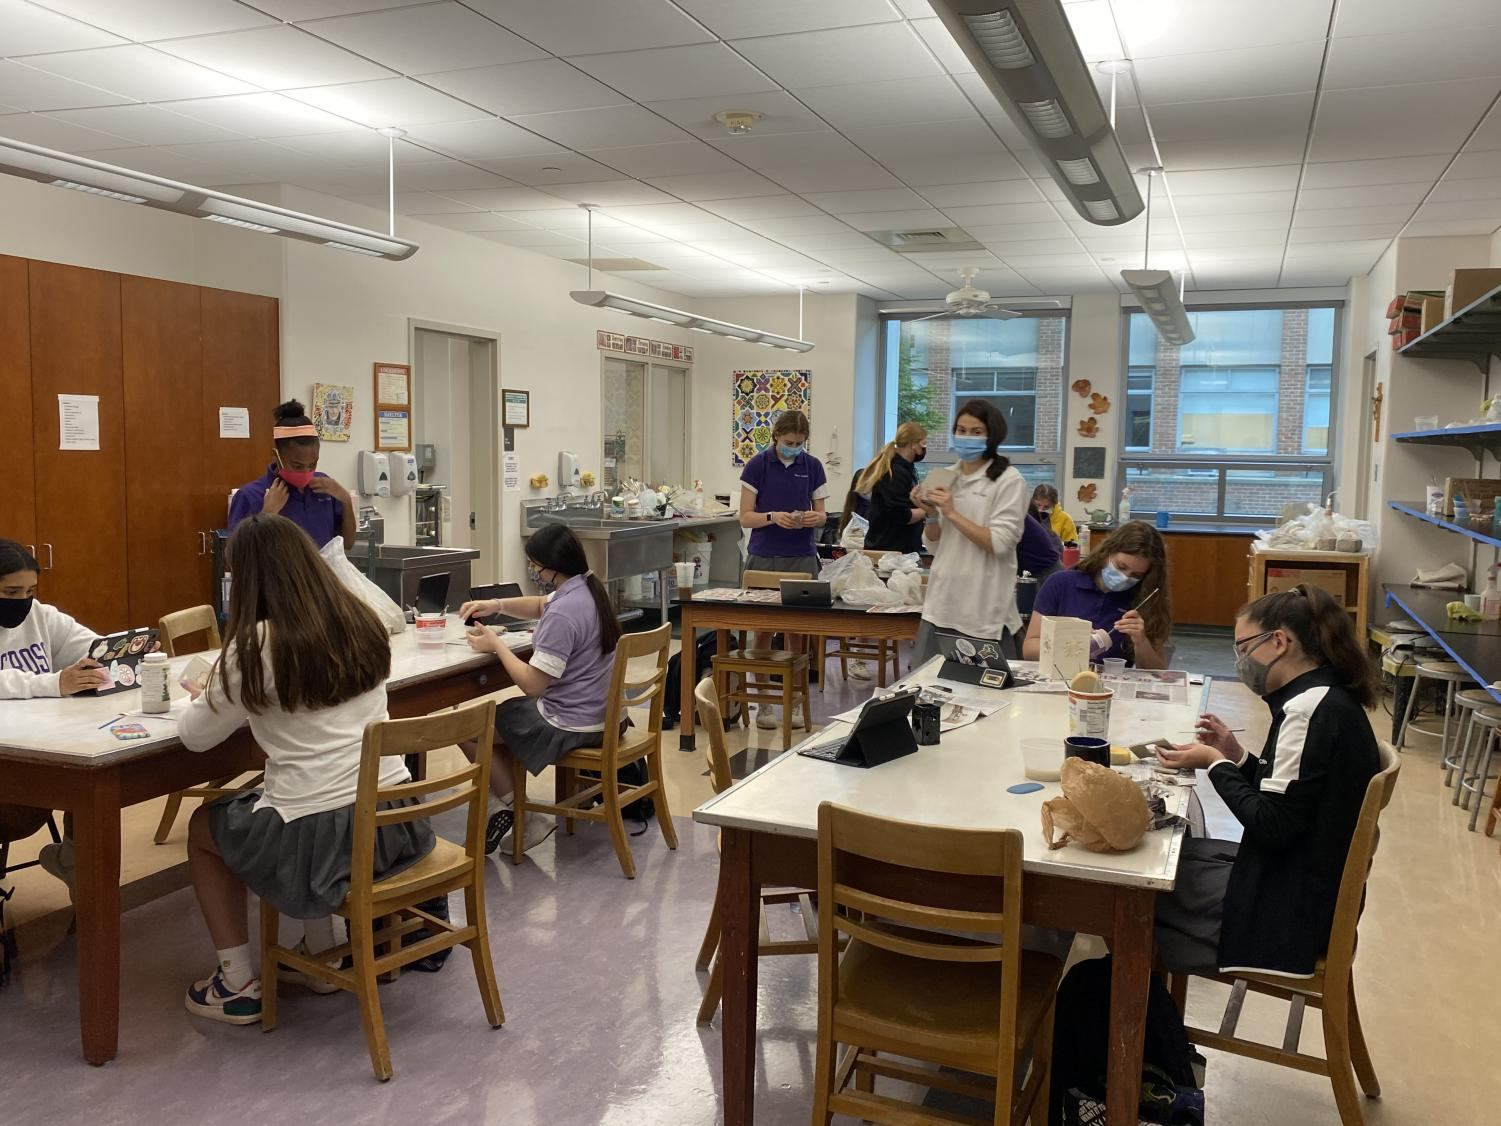 Students in ceramics working on their projects.